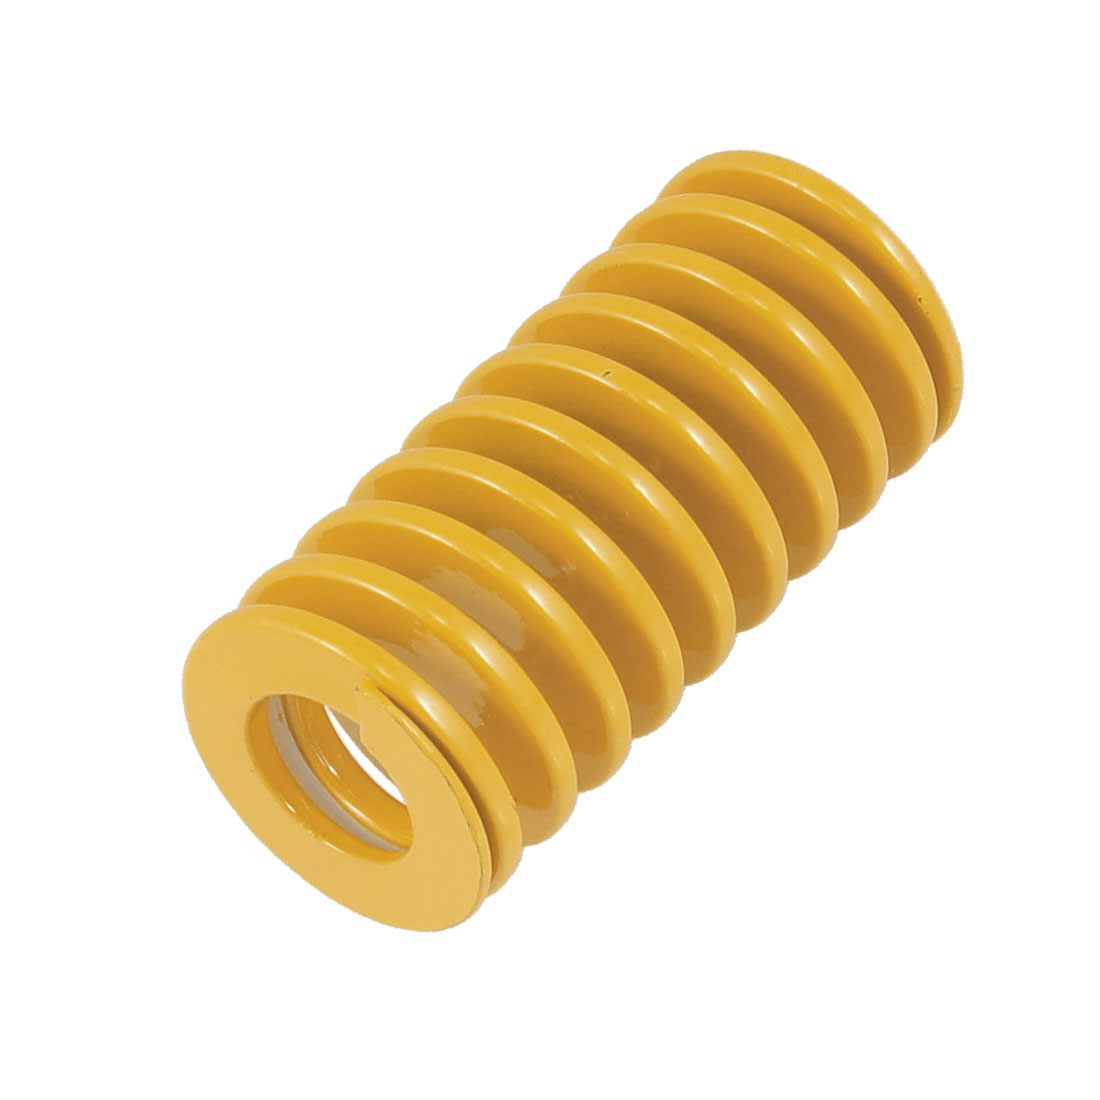 25mm x 13mm x 50mm Rectangular Section Mold Mould Die Spring